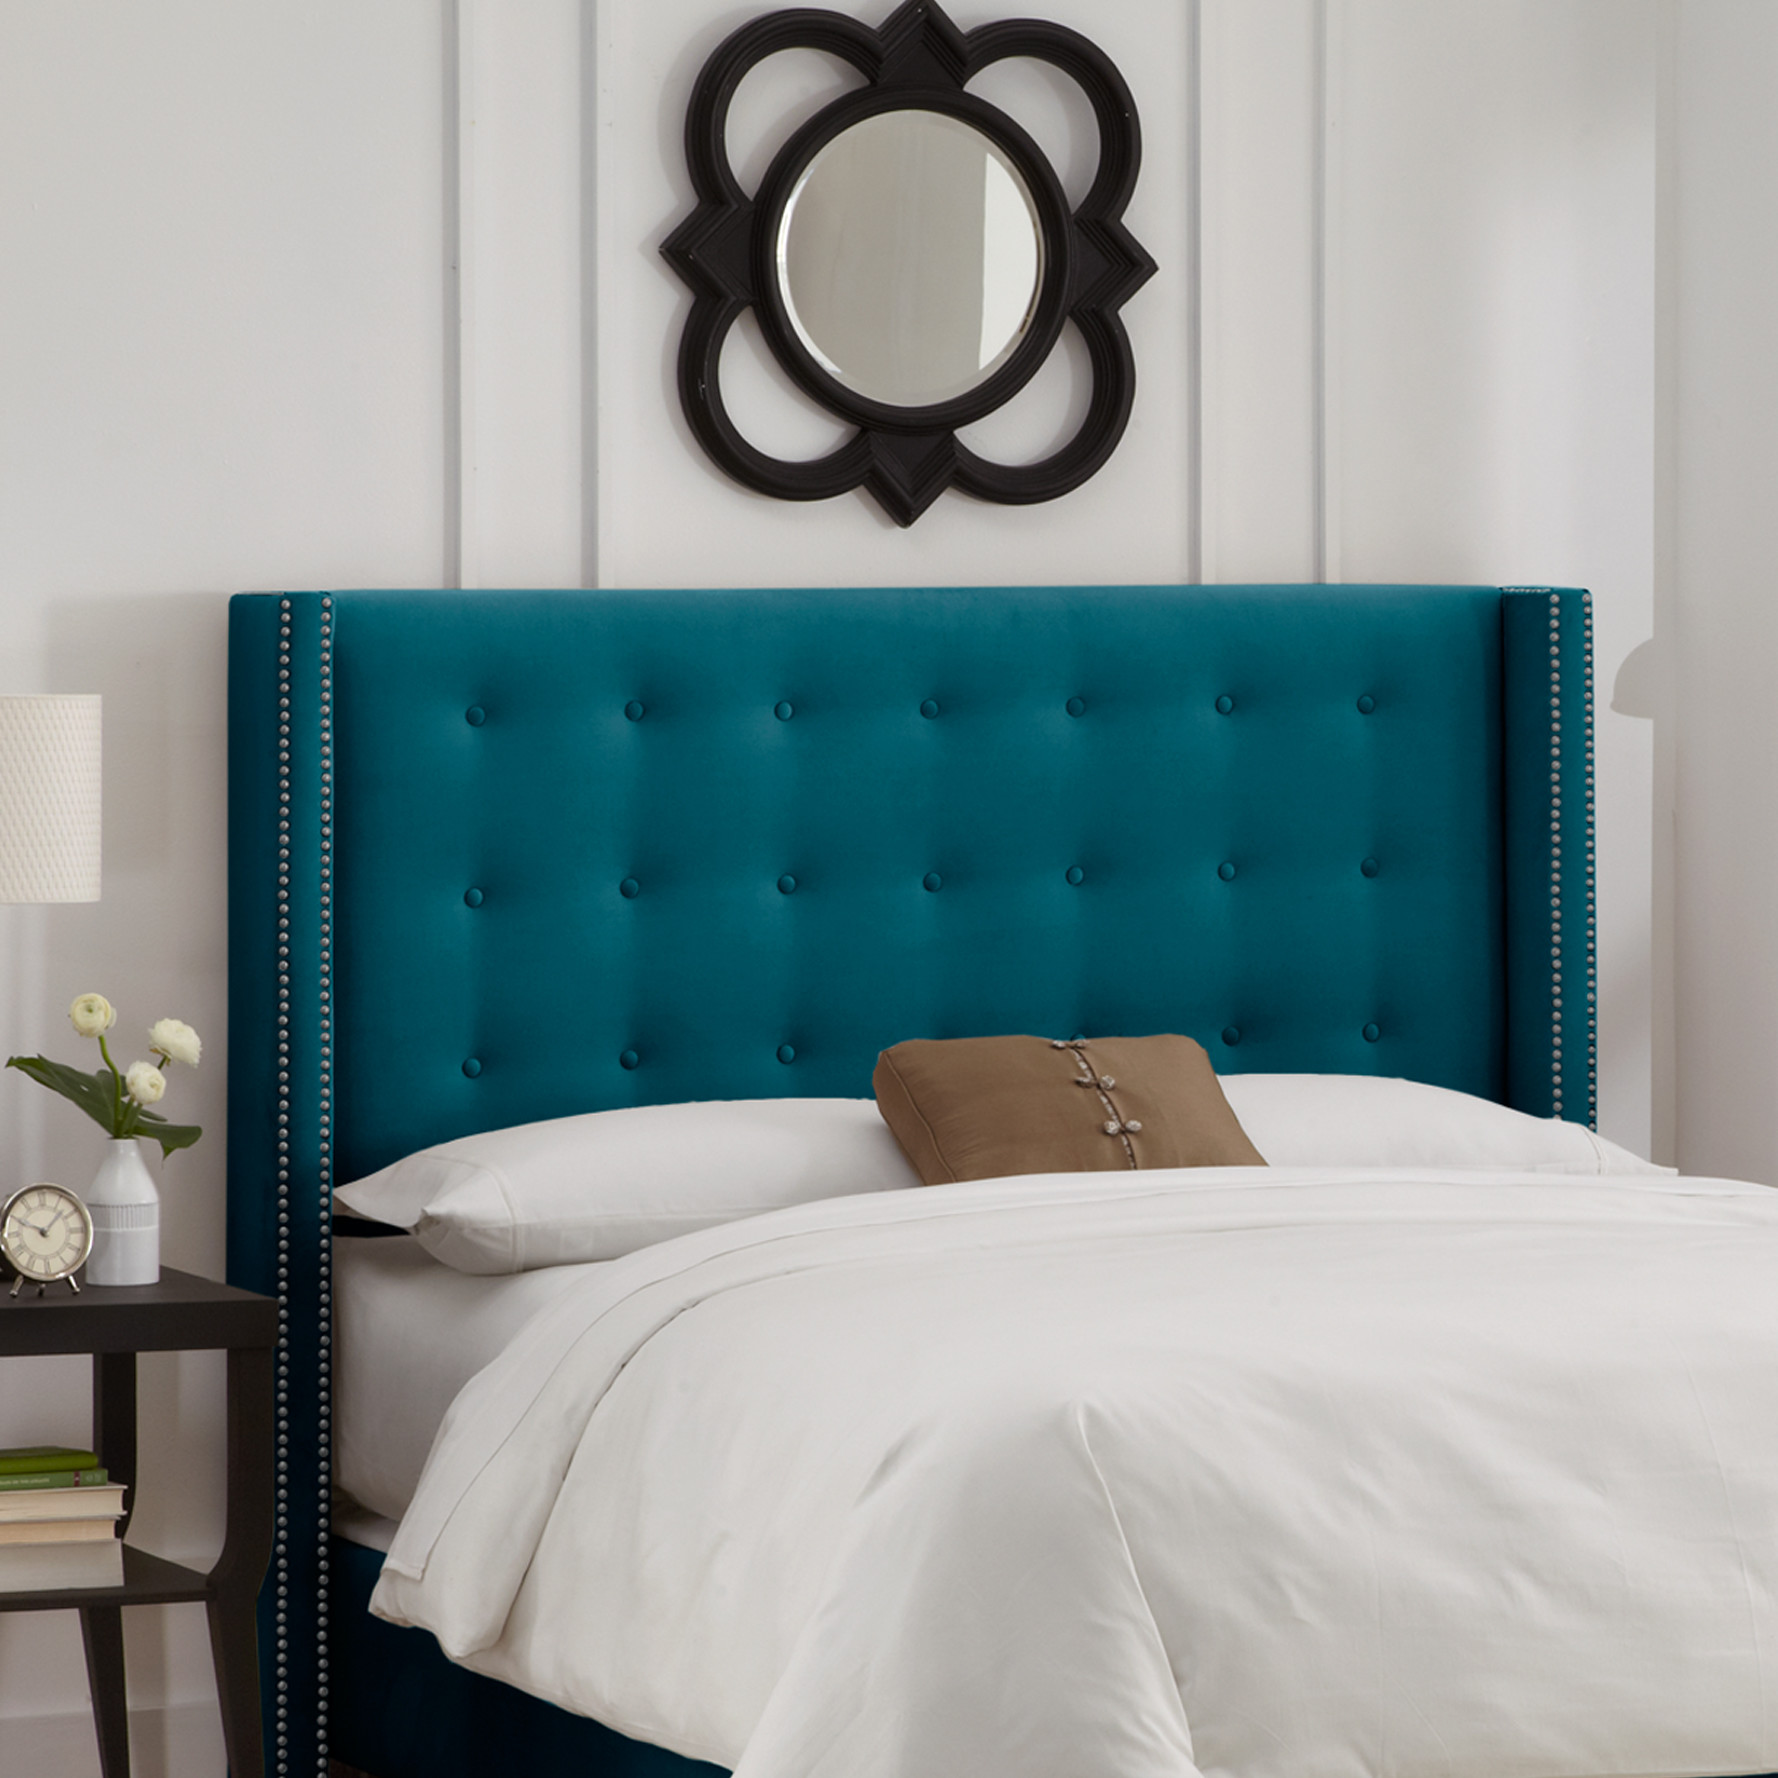 beds and headboards  everything turquoise - nail button tufted upholstered headboard